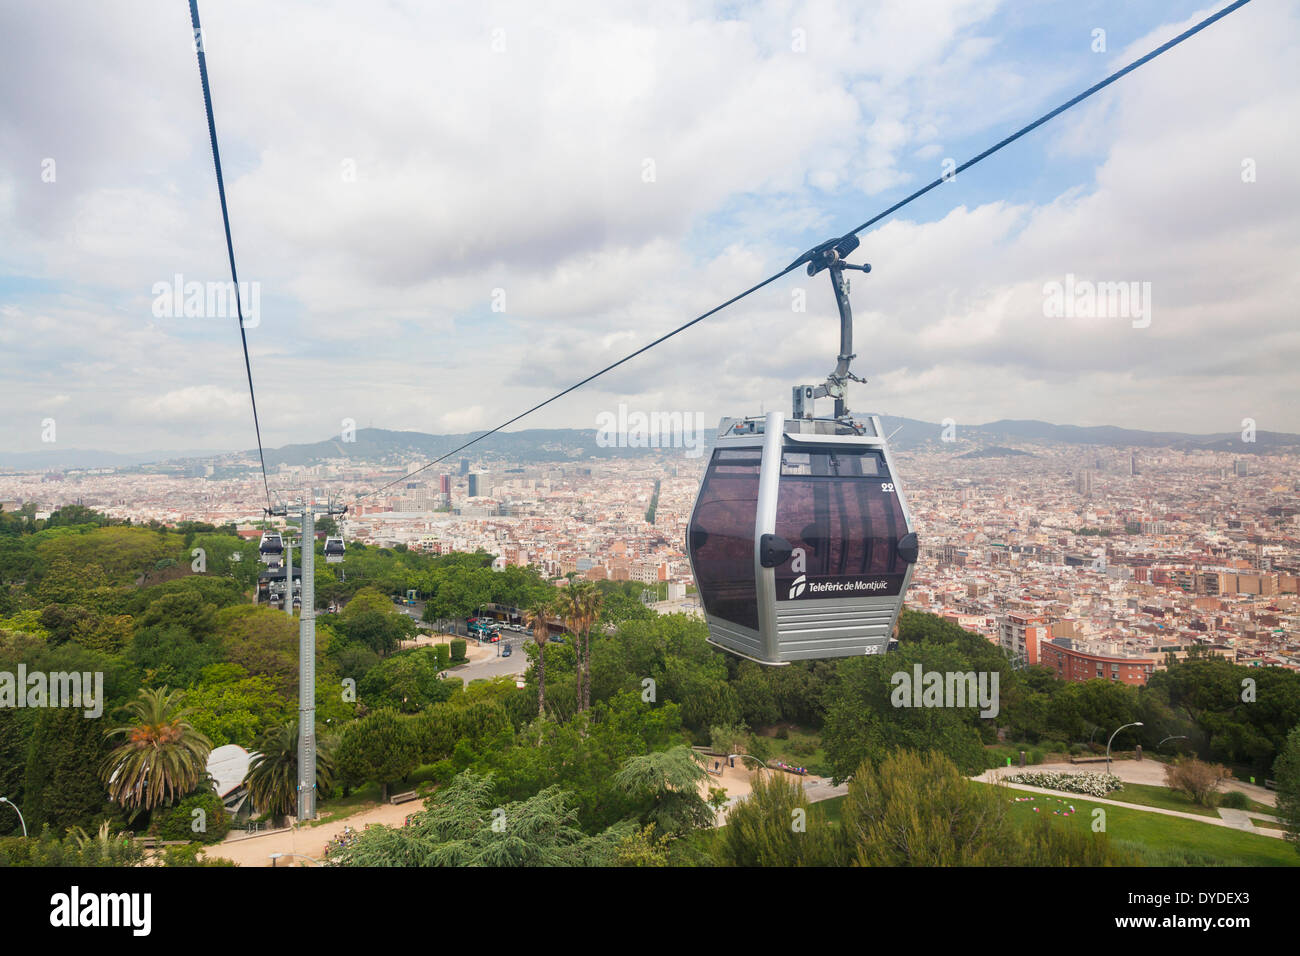 The Montjuic cable car with a panorama of Barcelona. - Stock Image